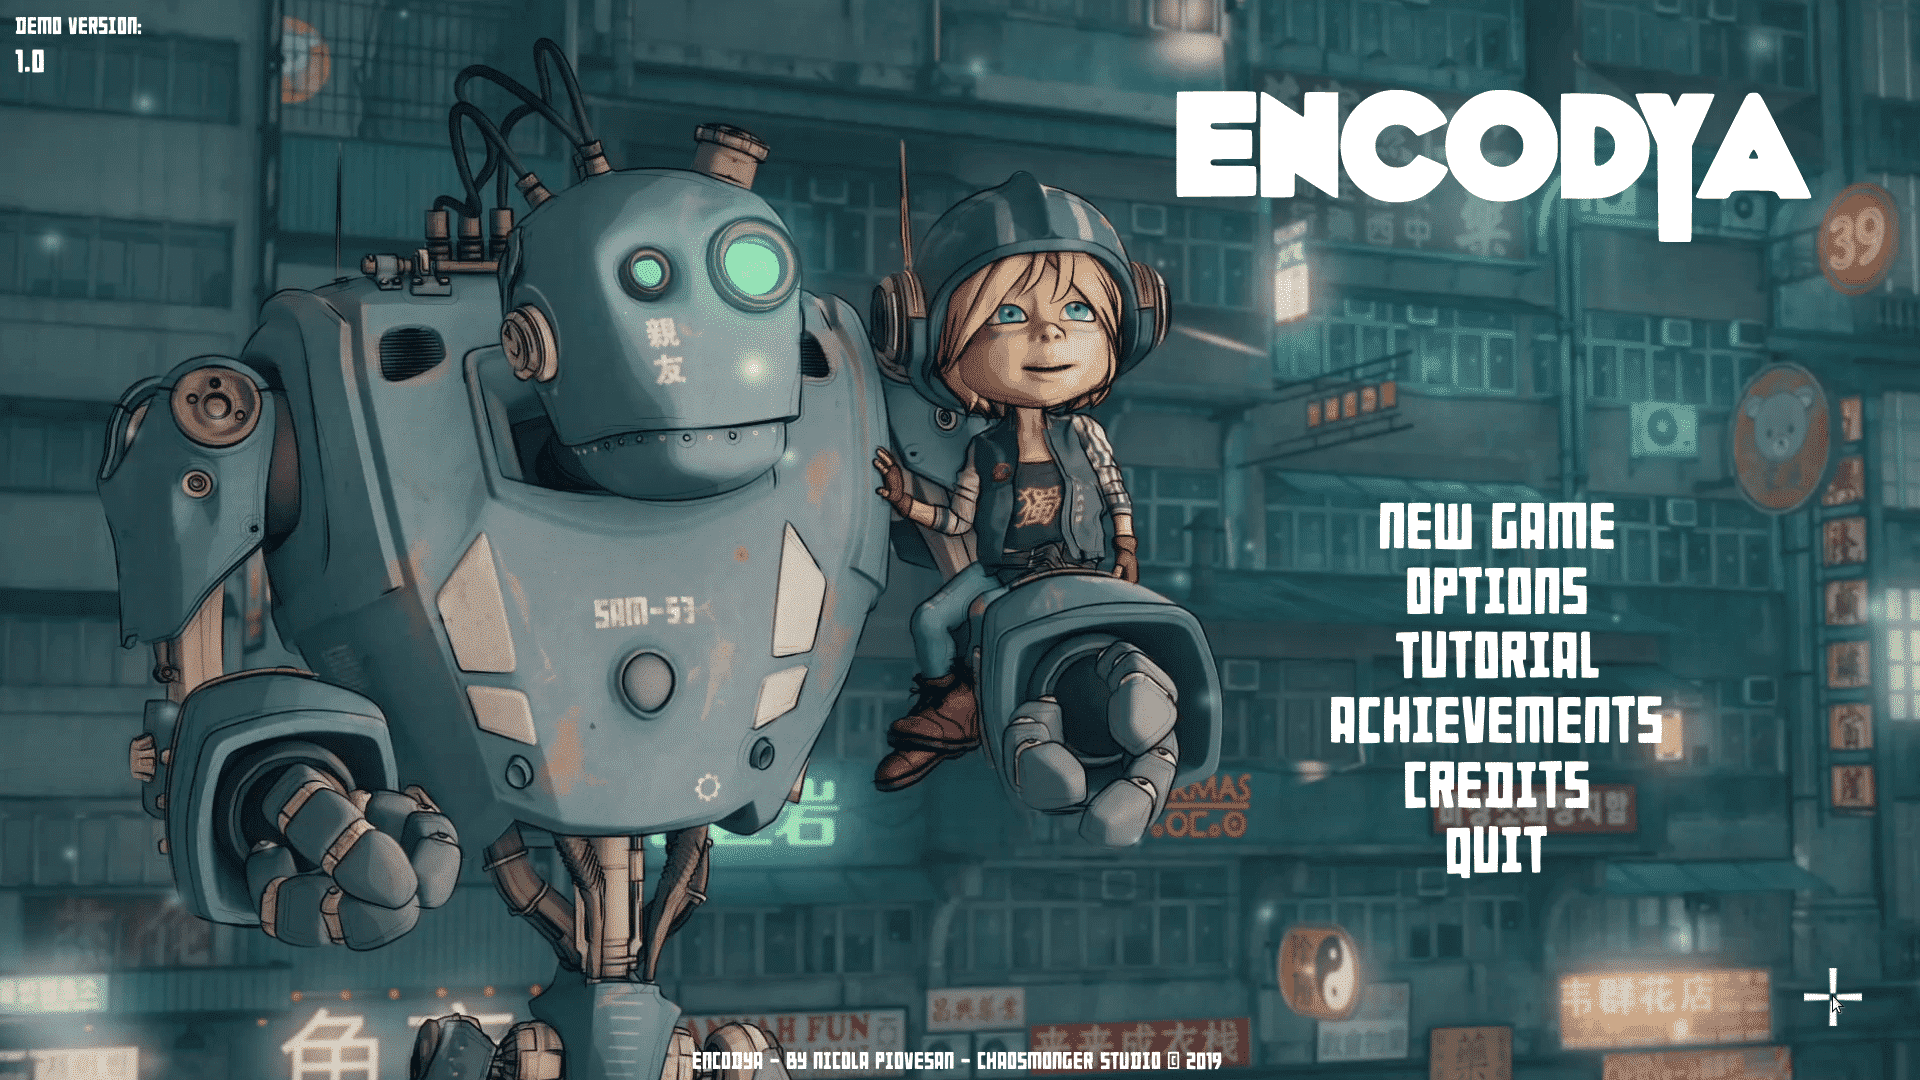 encodya point n click free demo screenshot for linux mac windows